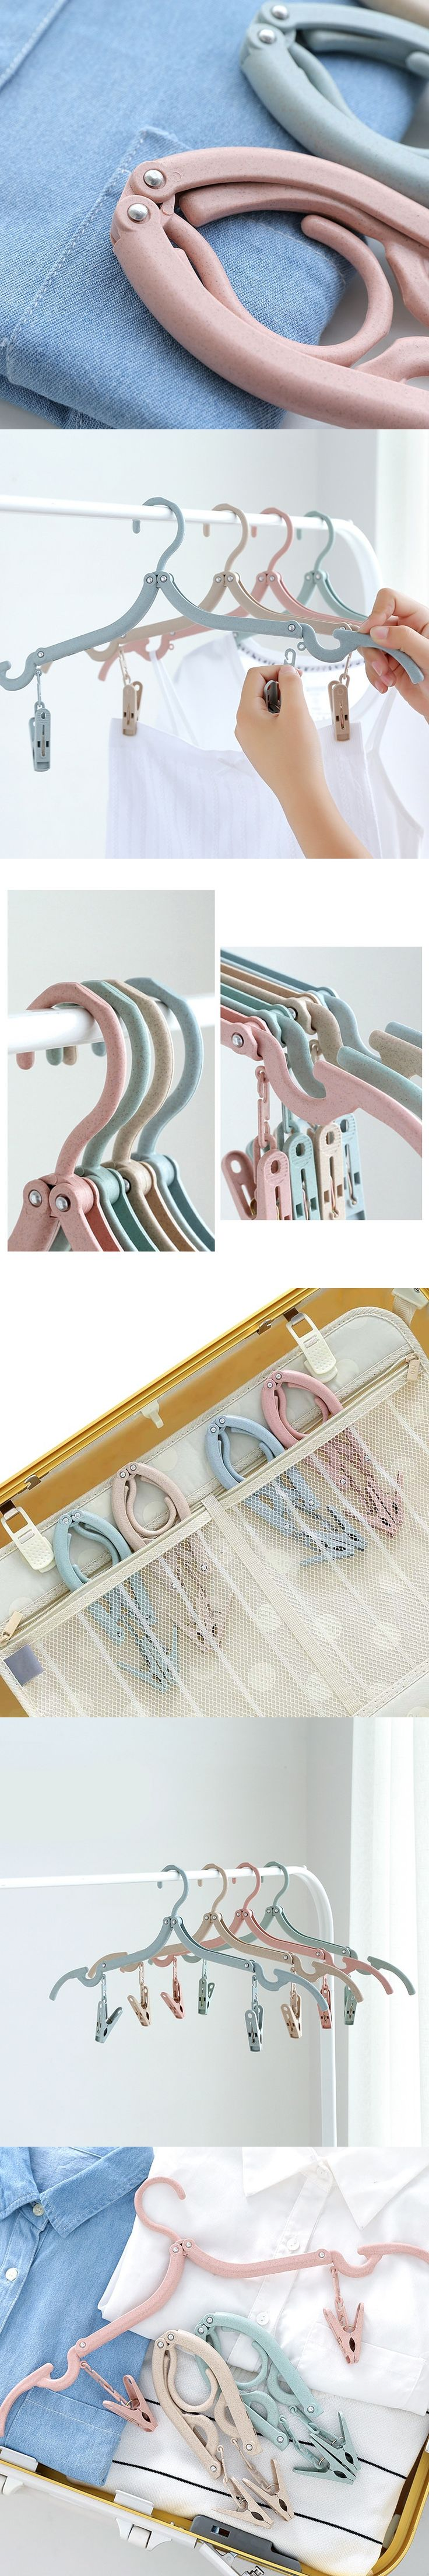 3 Pcs/Set Portable Folding Clothes Hangers With Clips Space Saving Camping Travel Clothing Drying Rack E2S